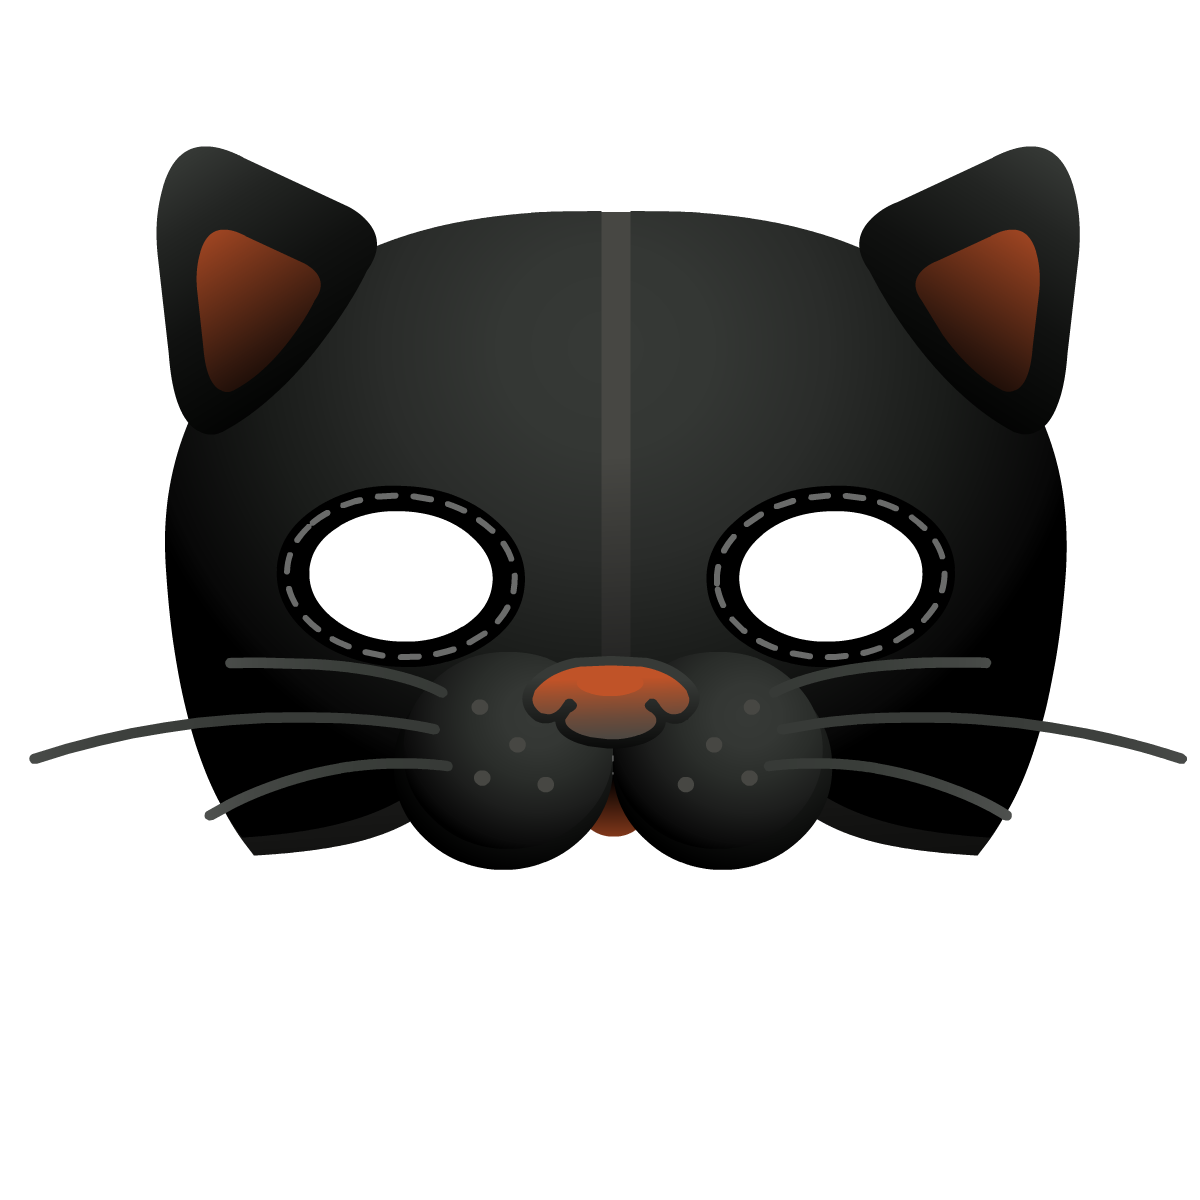 Sample from the Free Halloween Masks hub